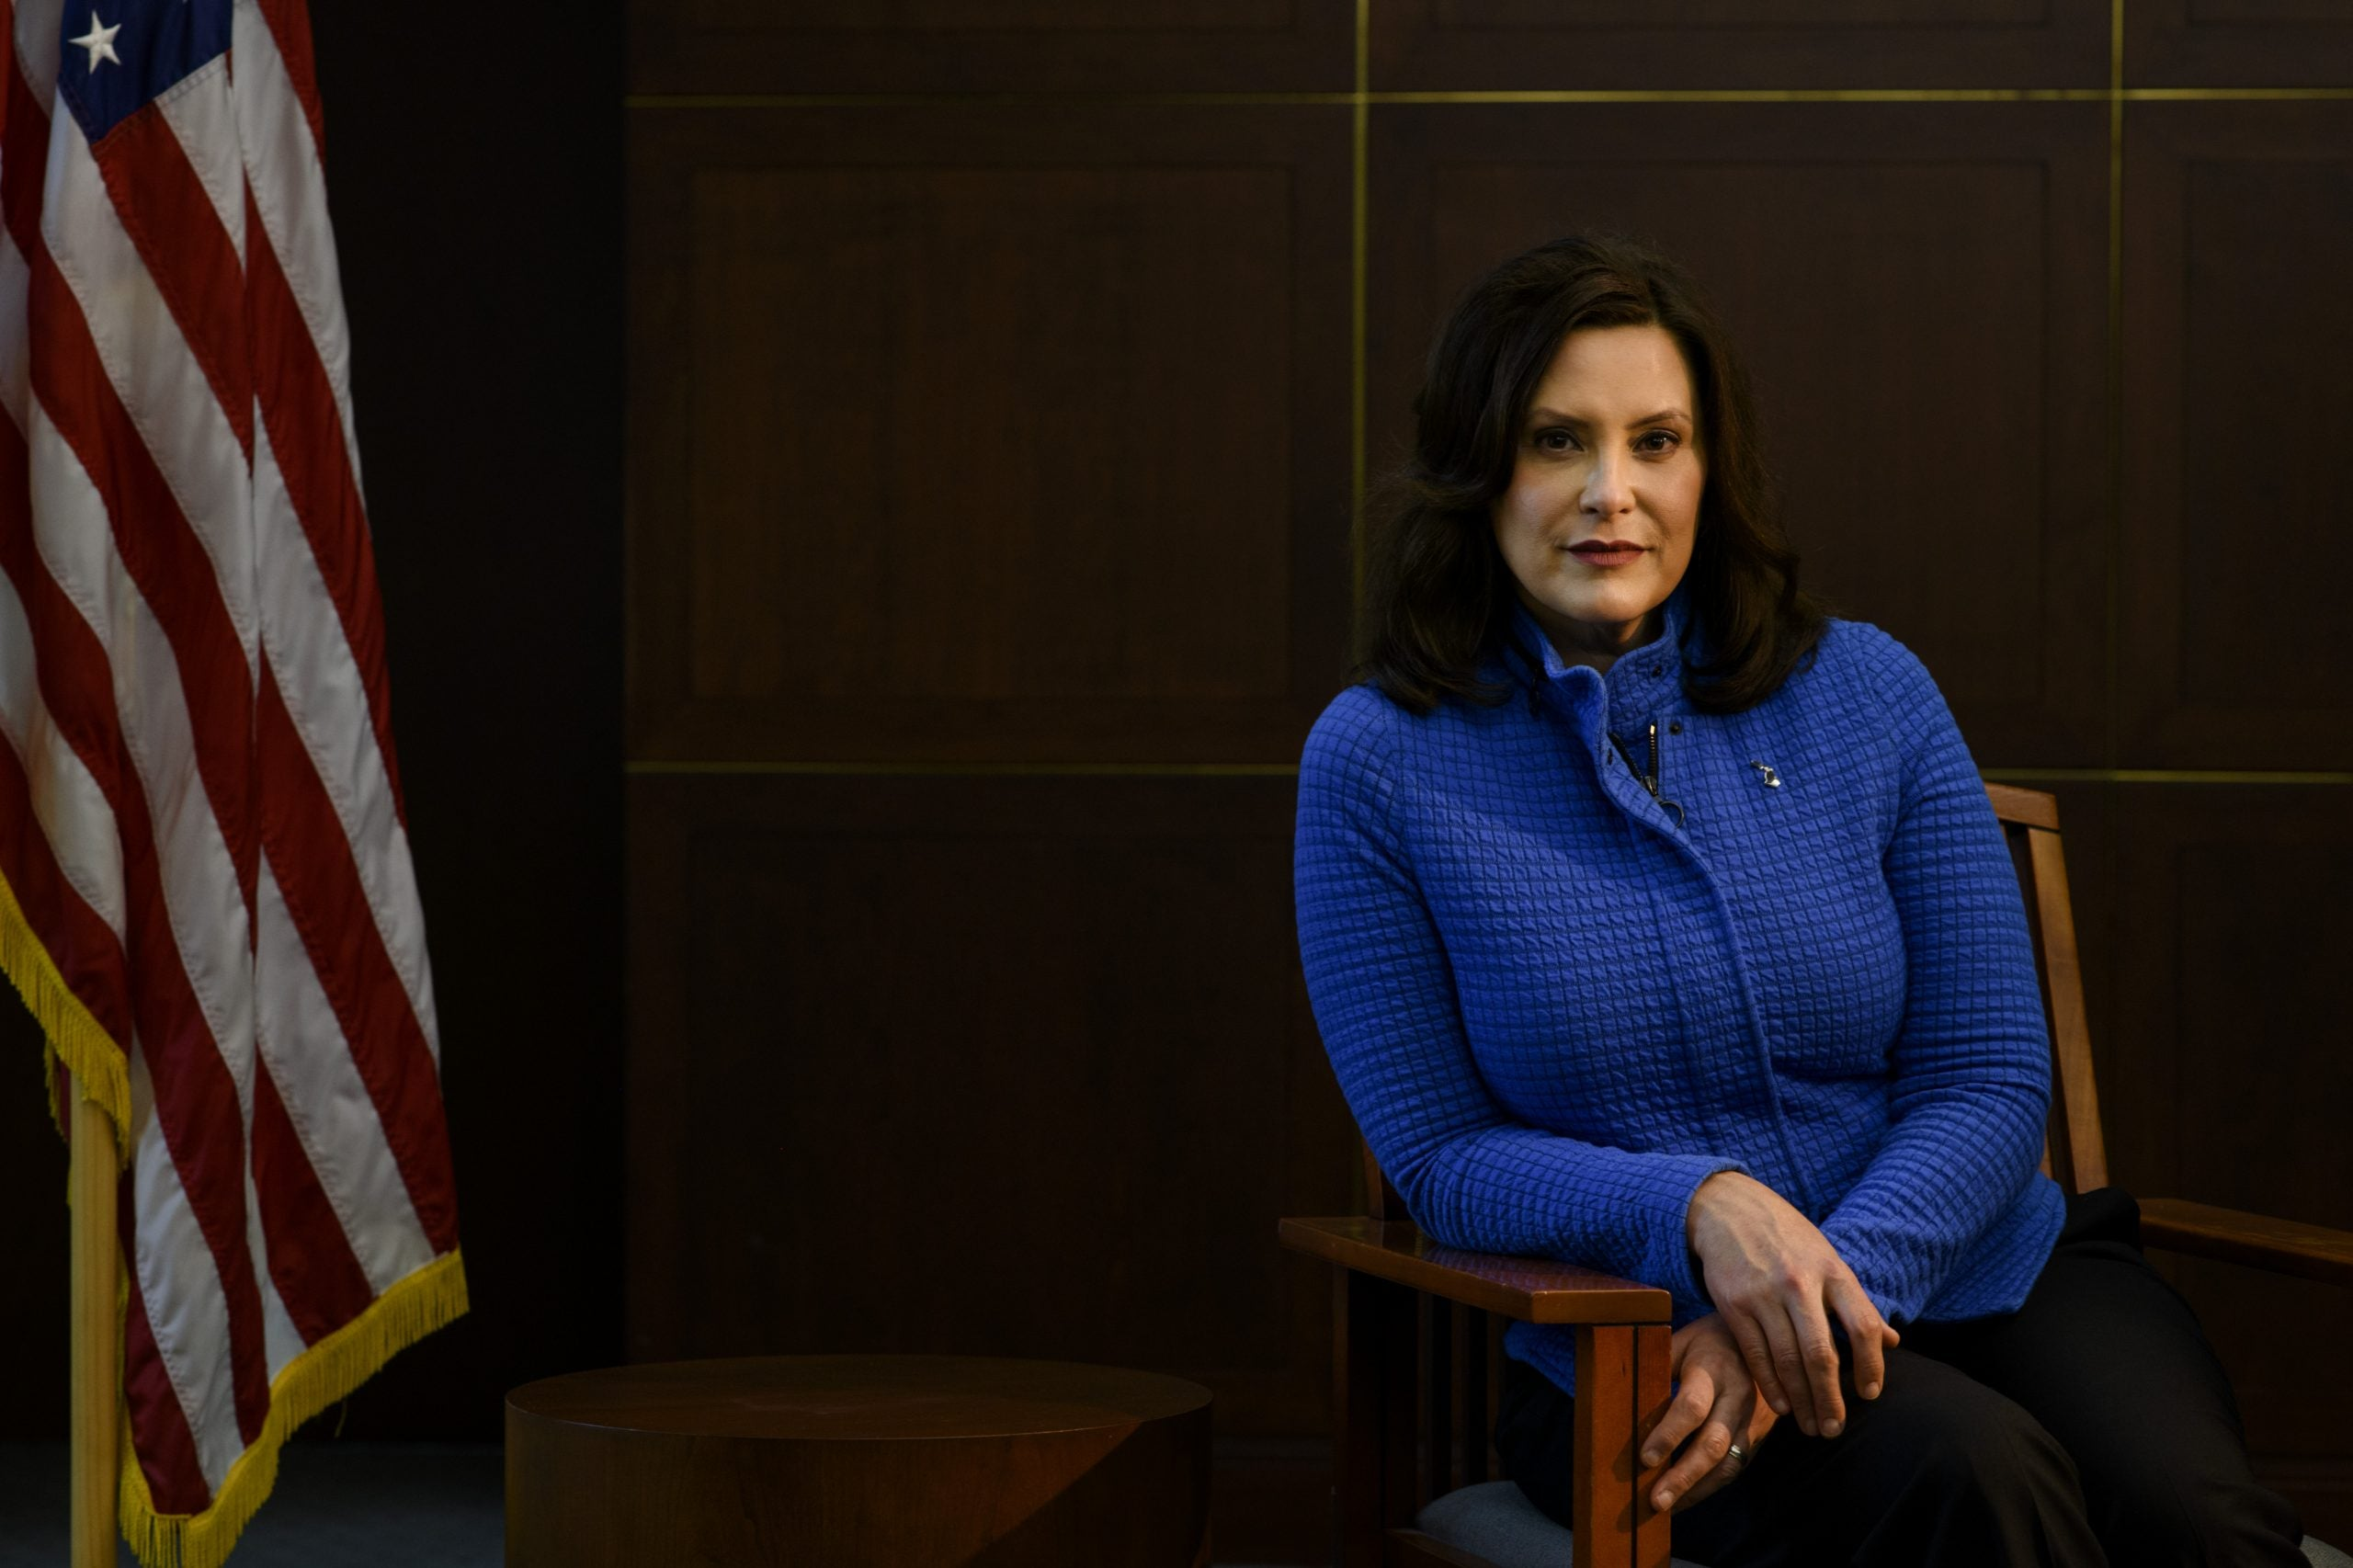 Gov. Gretchen Whitmer. The Democrat leader is placing attention on the effects of racism, calling it a public health crisis